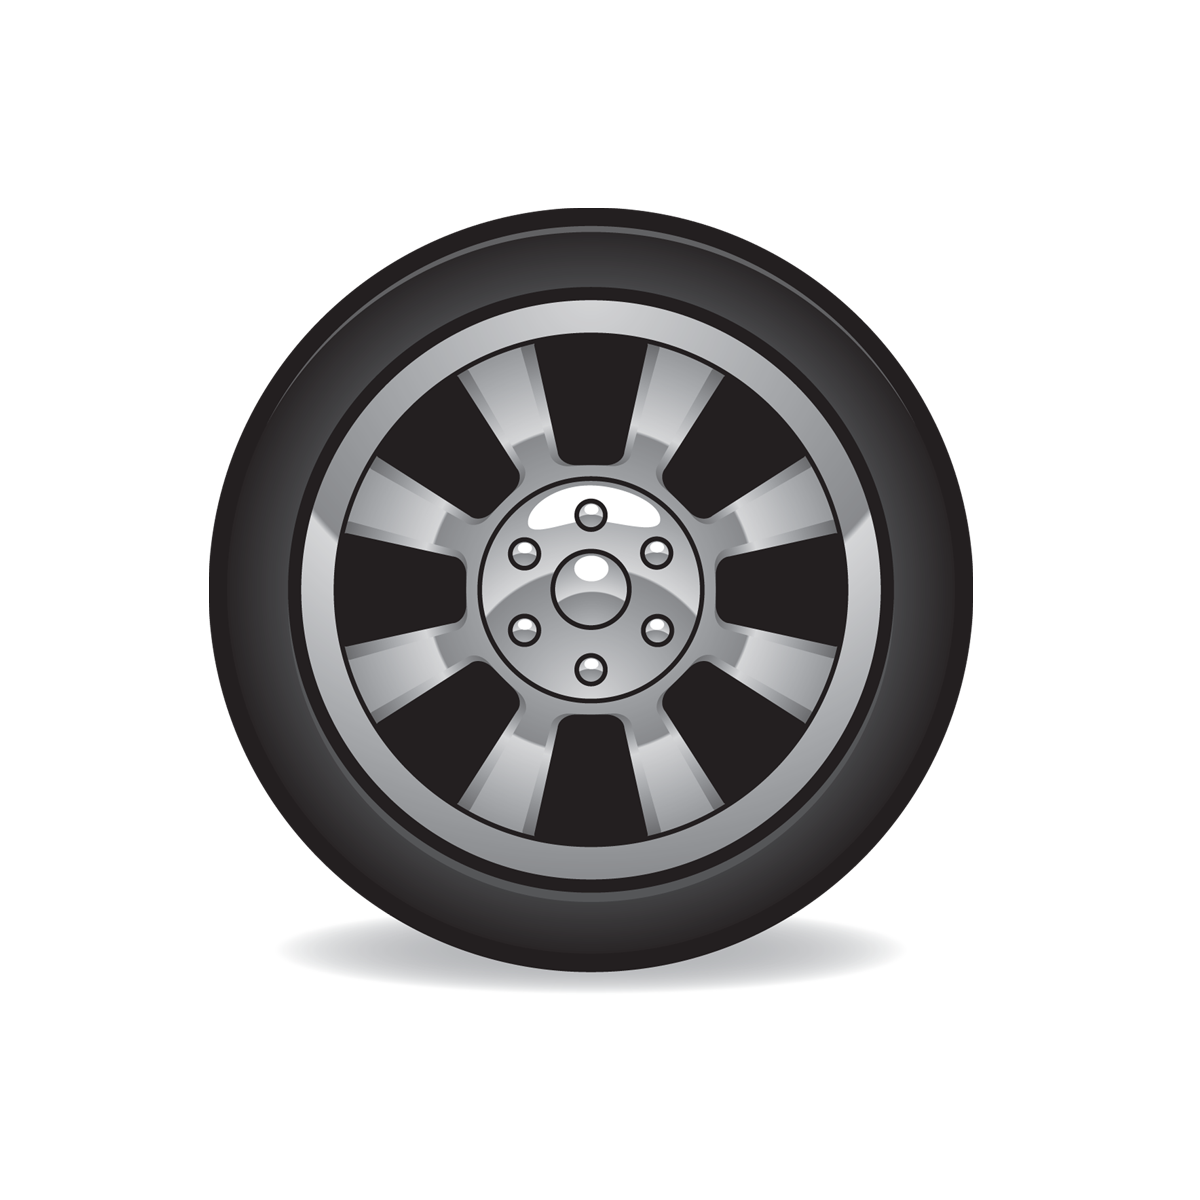 Tire clipart vector png royalty free Free Tire Cliparts, Download Free Clip Art, Free Clip Art on Clipart ... png royalty free